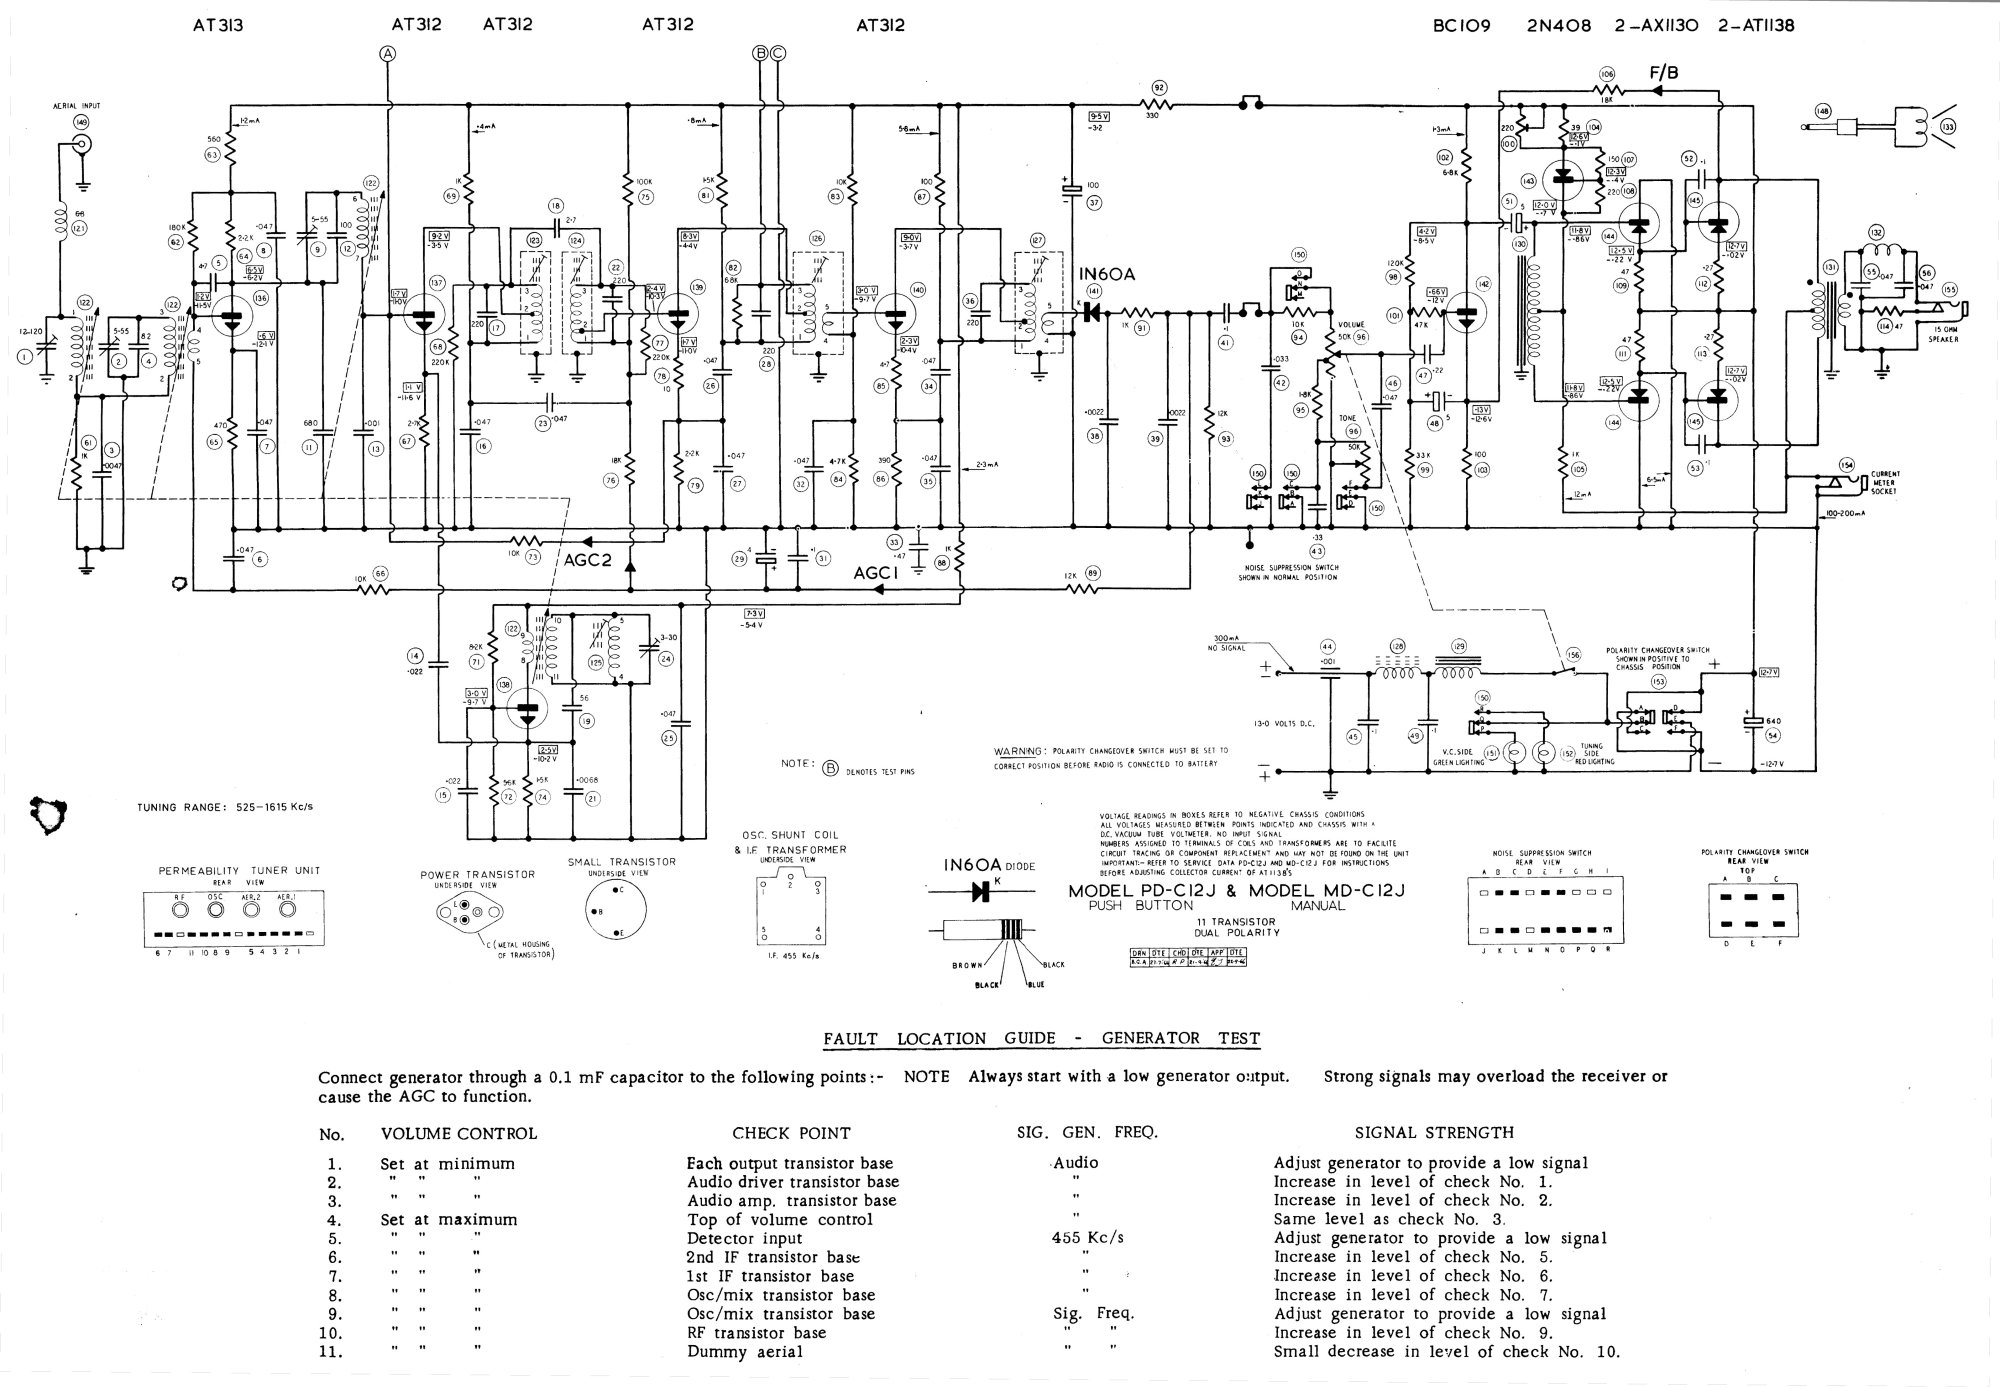 hight resolution of 1967 gm air chief pd c12j md c12j car radio circuit board